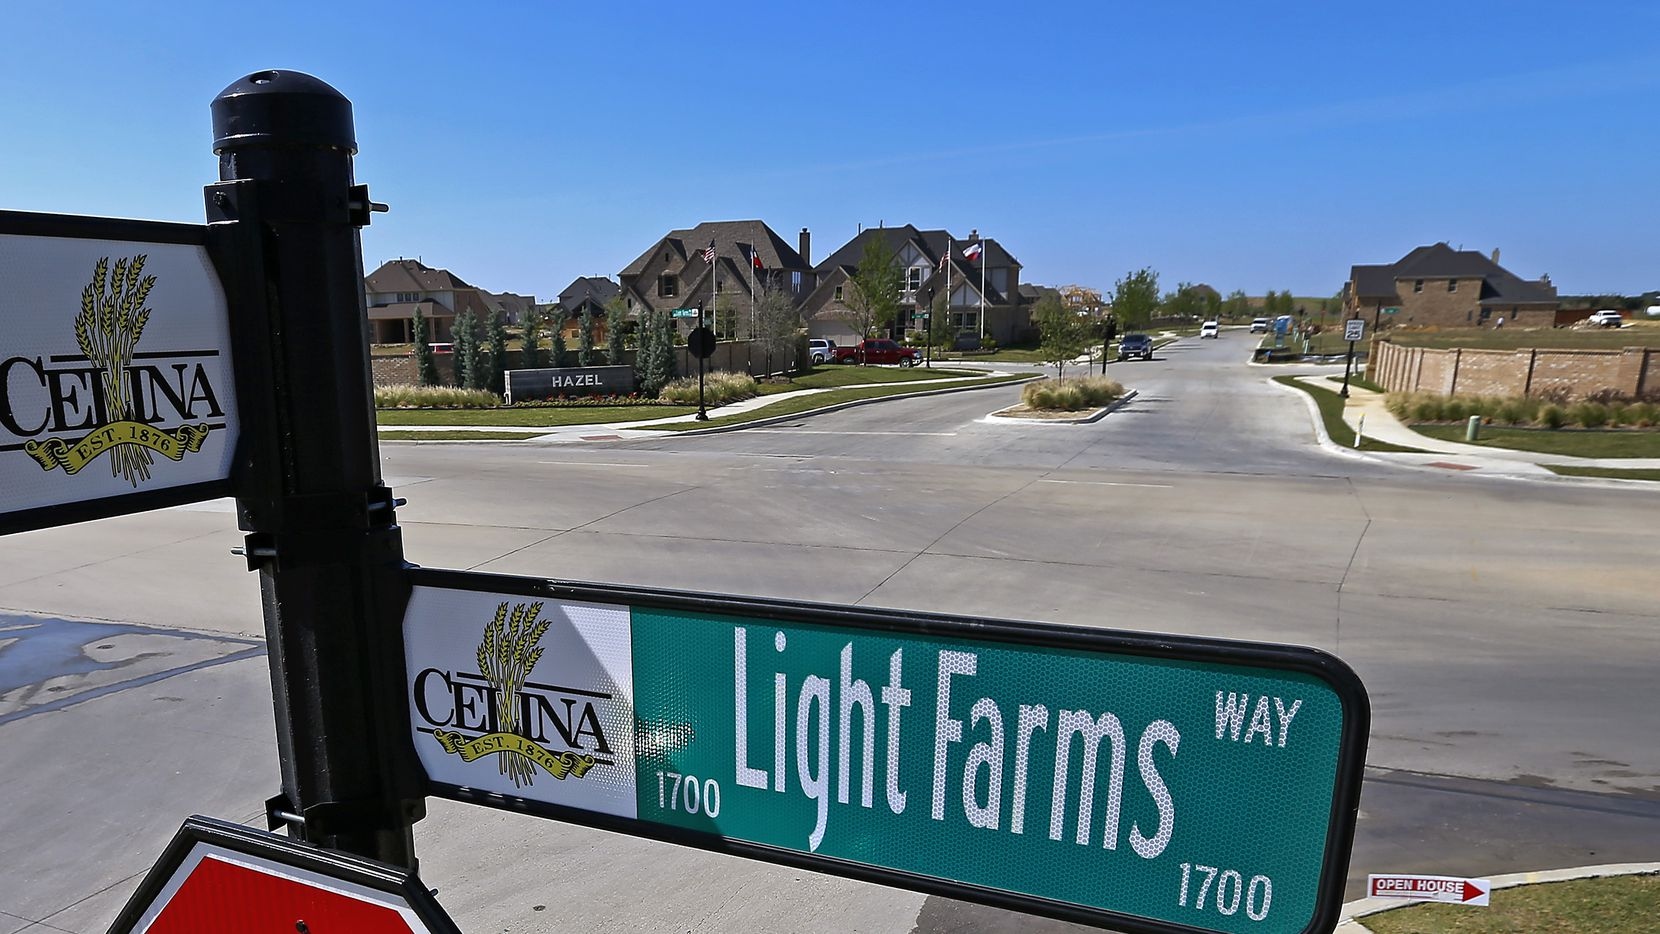 Startup builder Tradition Homes is building its first neighborhood in Celina's Light Farms community.